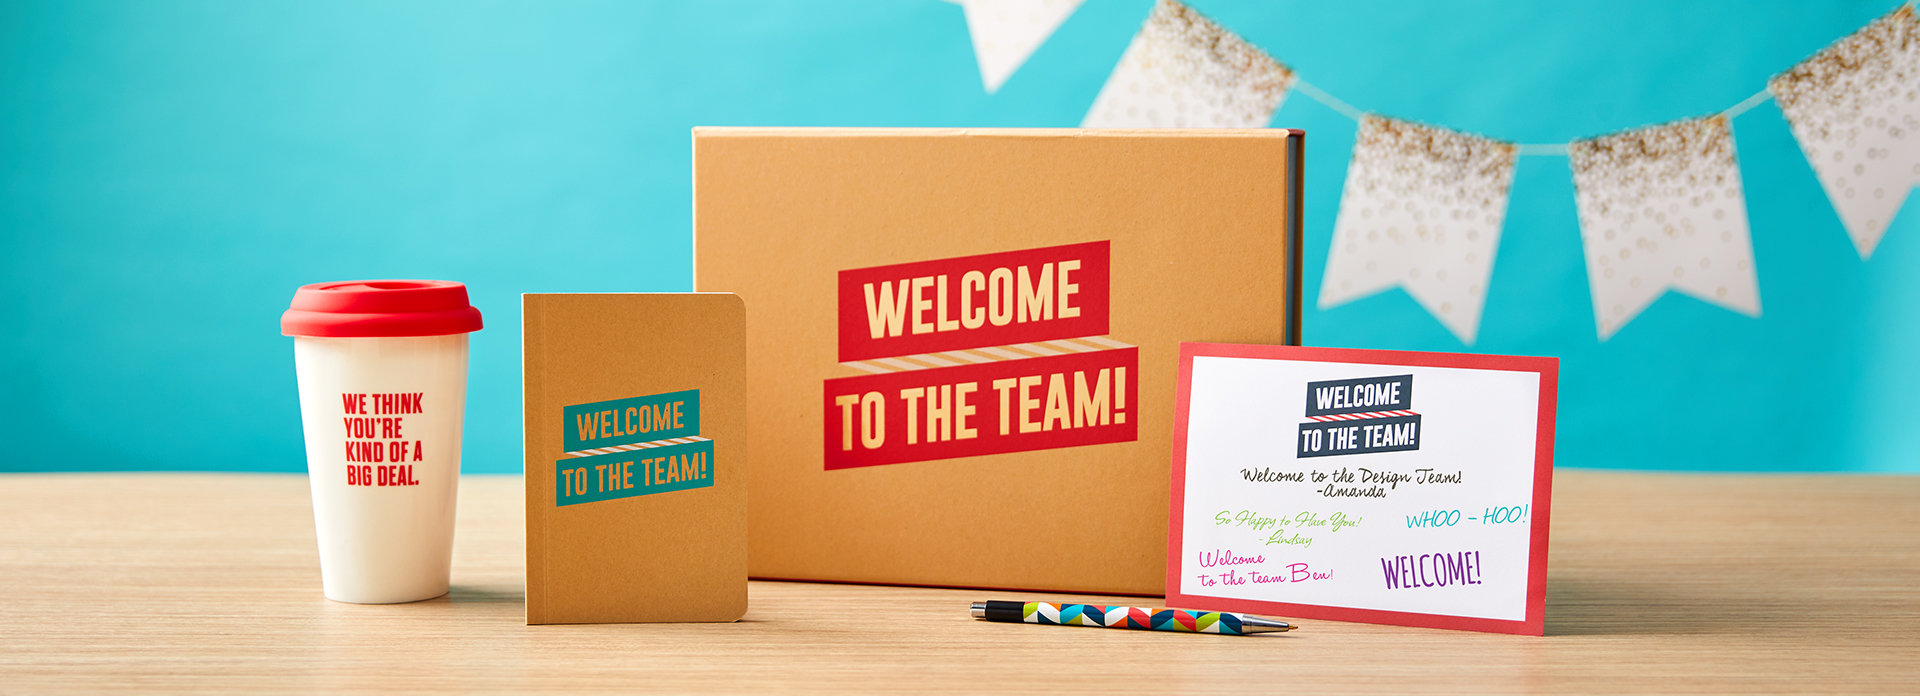 Onboarding gifts